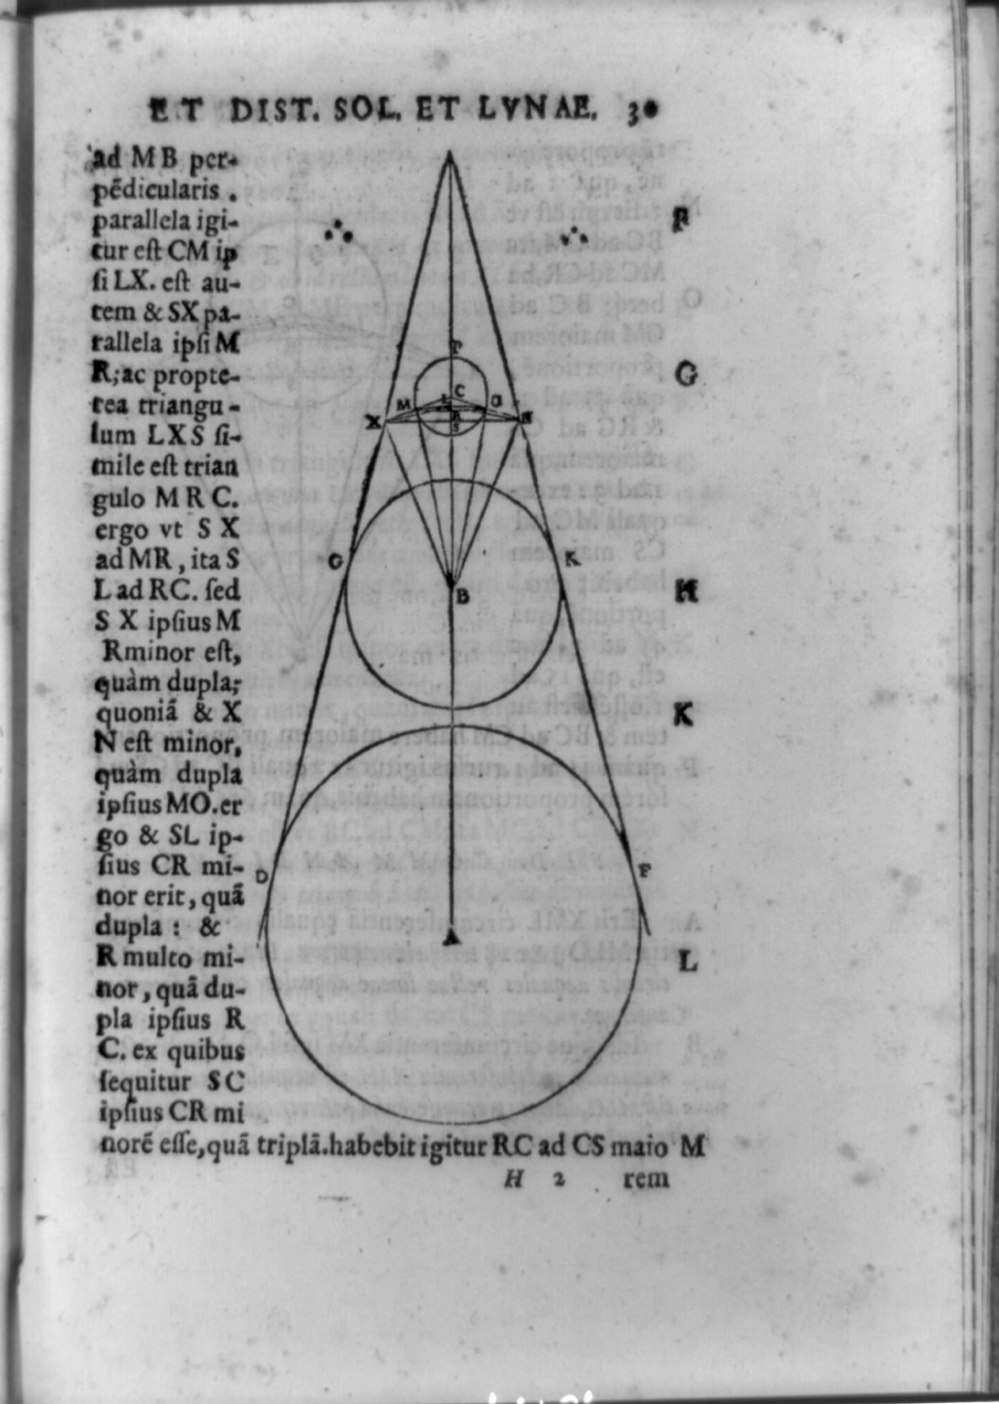 medium resolution of file geometric figure of earth sun and moon calculated by aristarchus to approximate real scale of the solar system lccn92516455 jpg